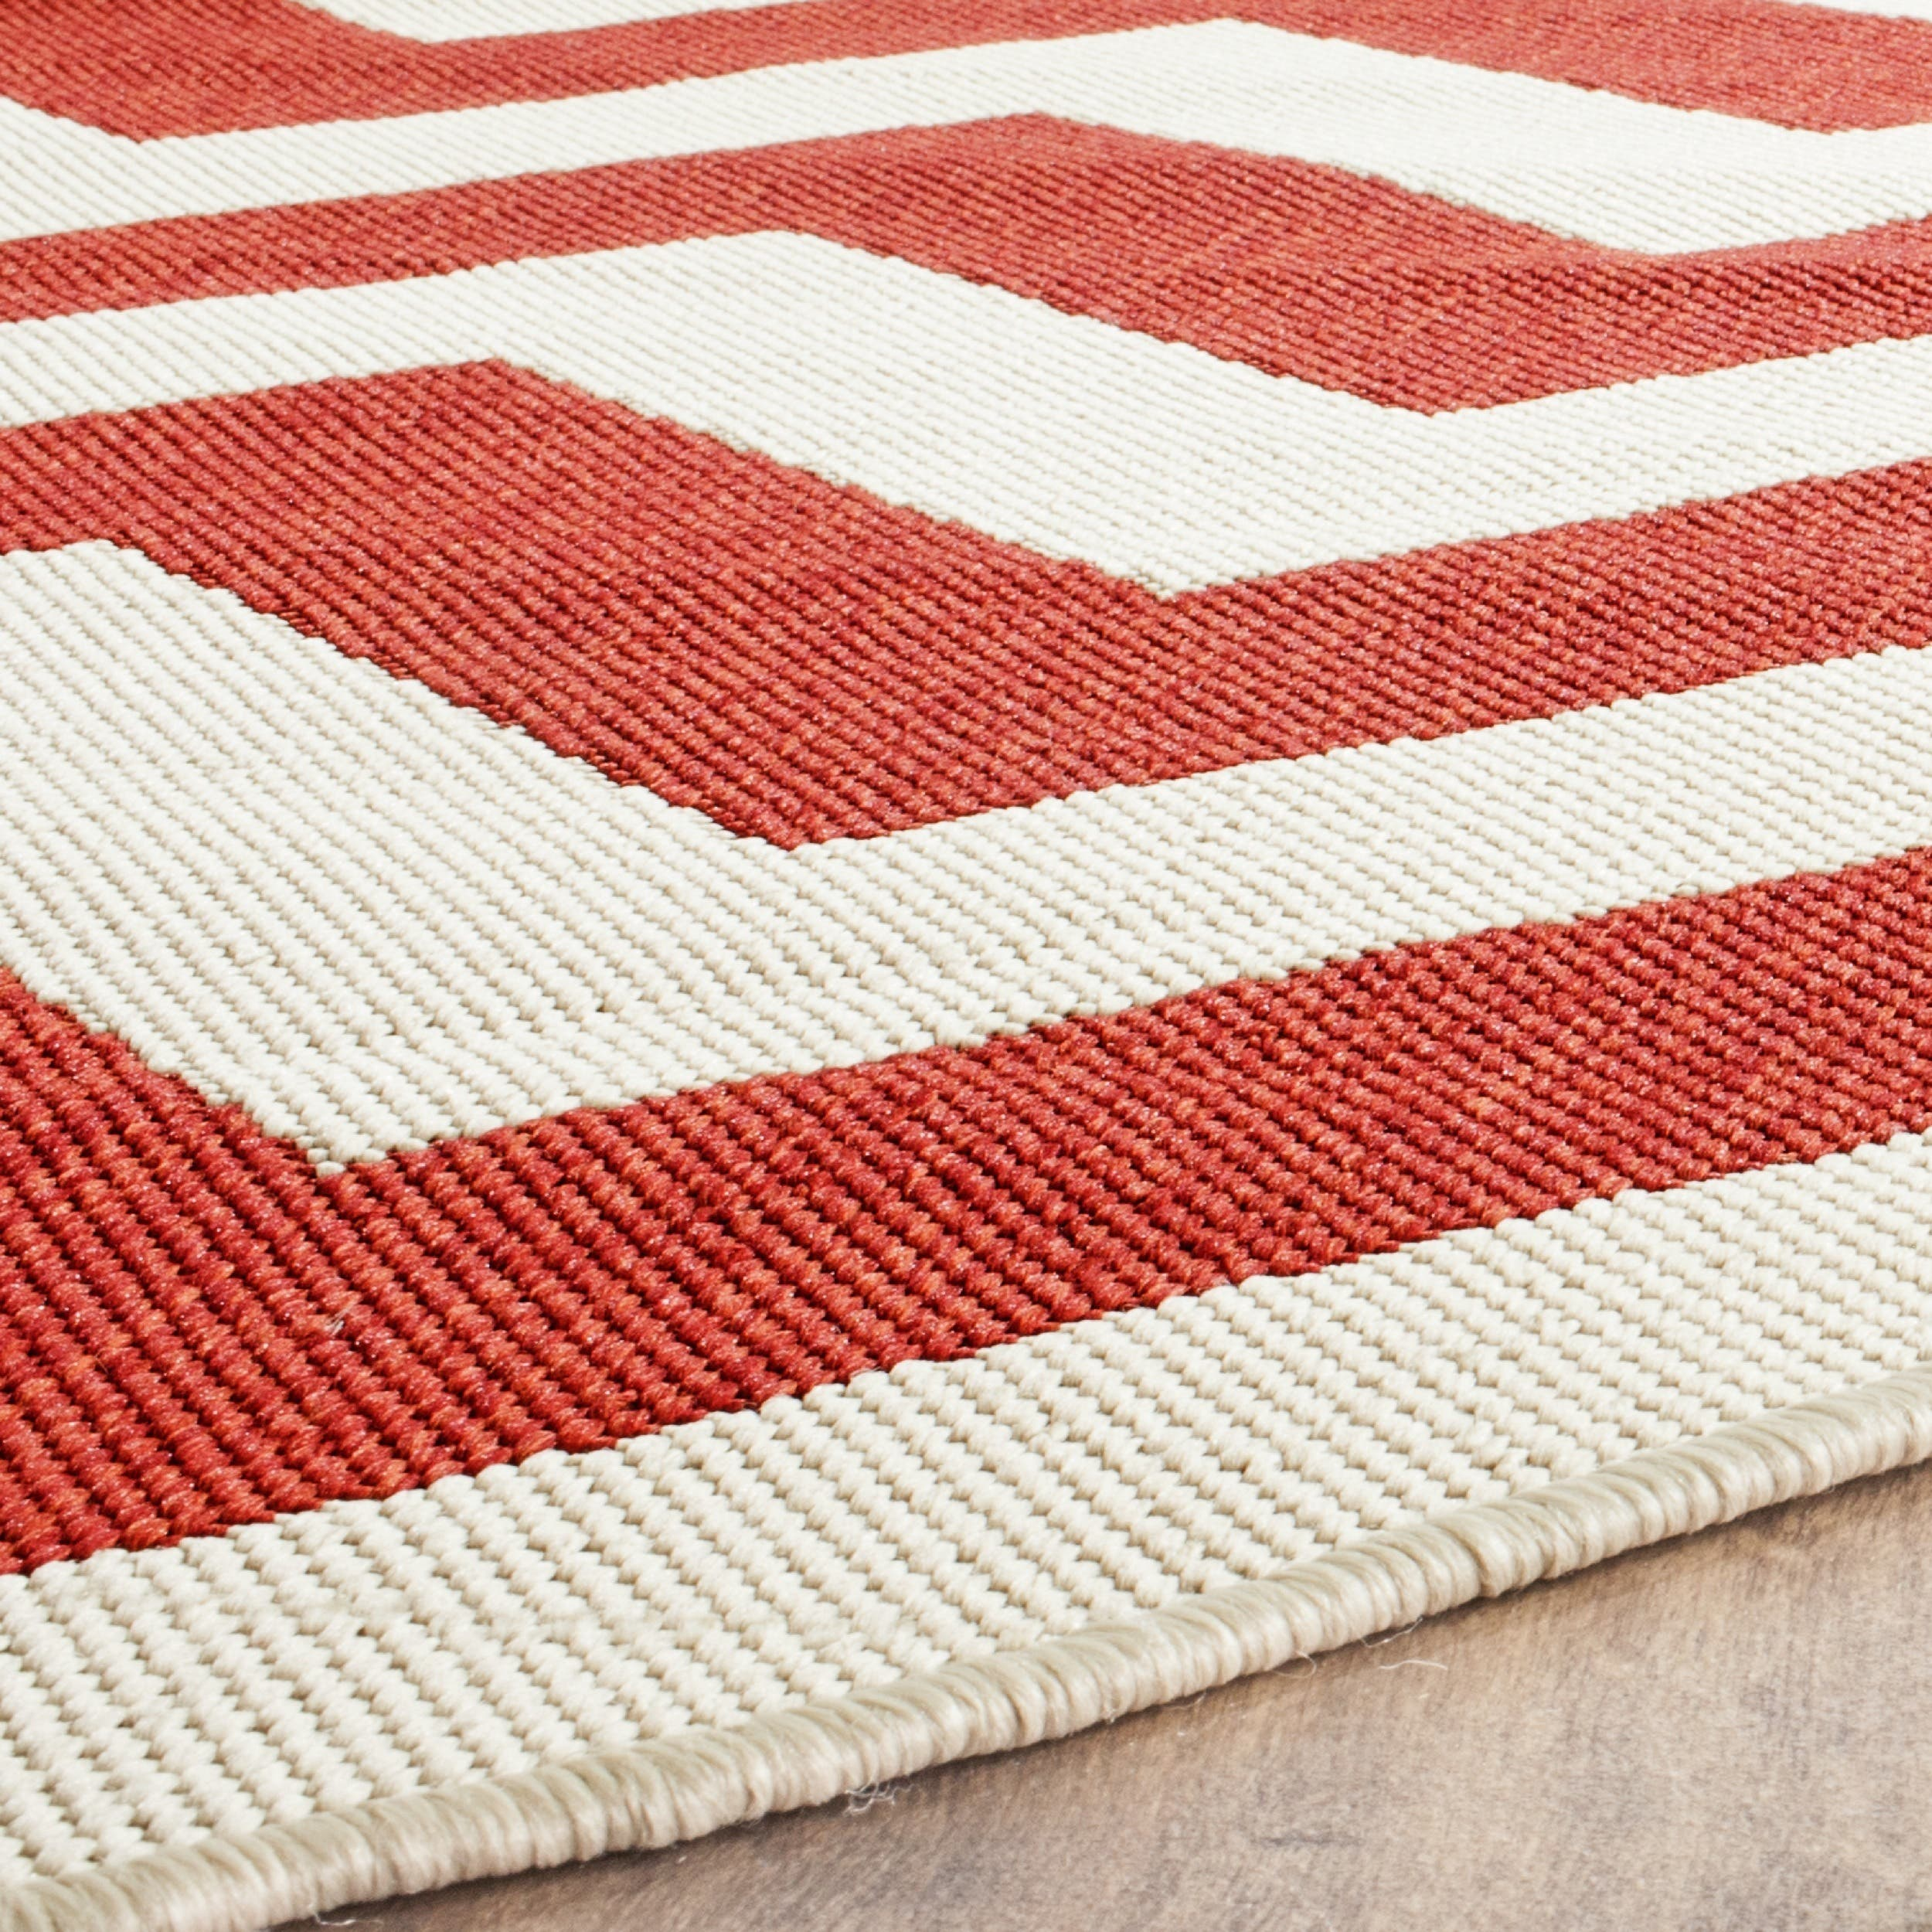 Buy Round, Oval & Square Area Rugs Online At Overstock.com